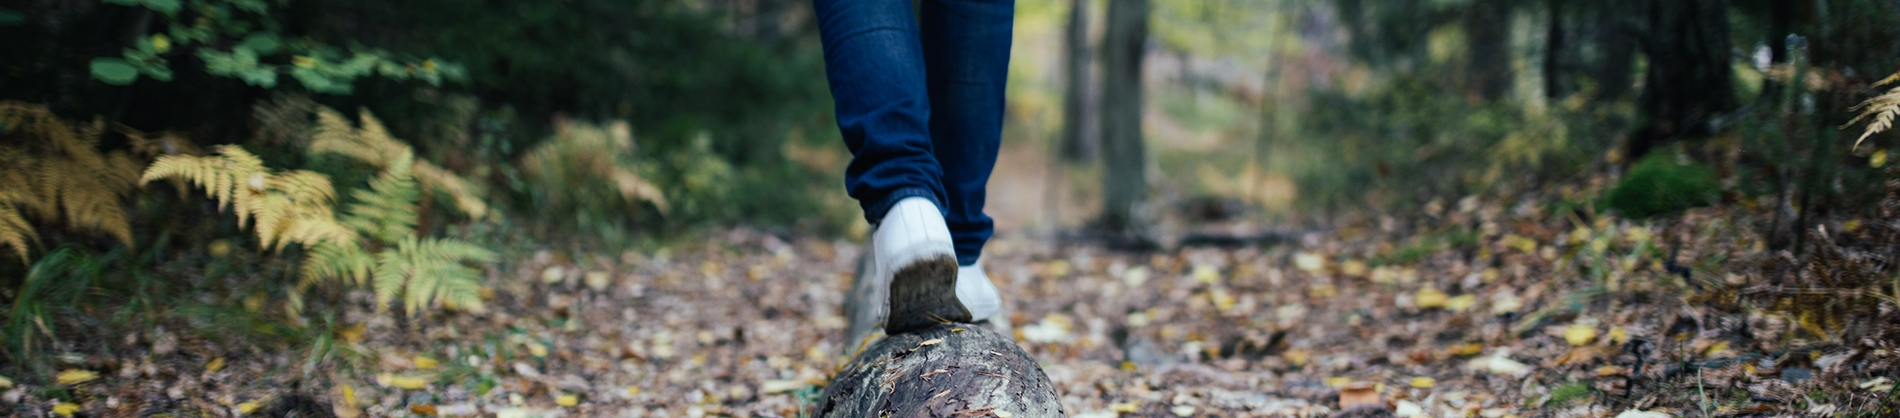 A person walking along a fallen tree trunk